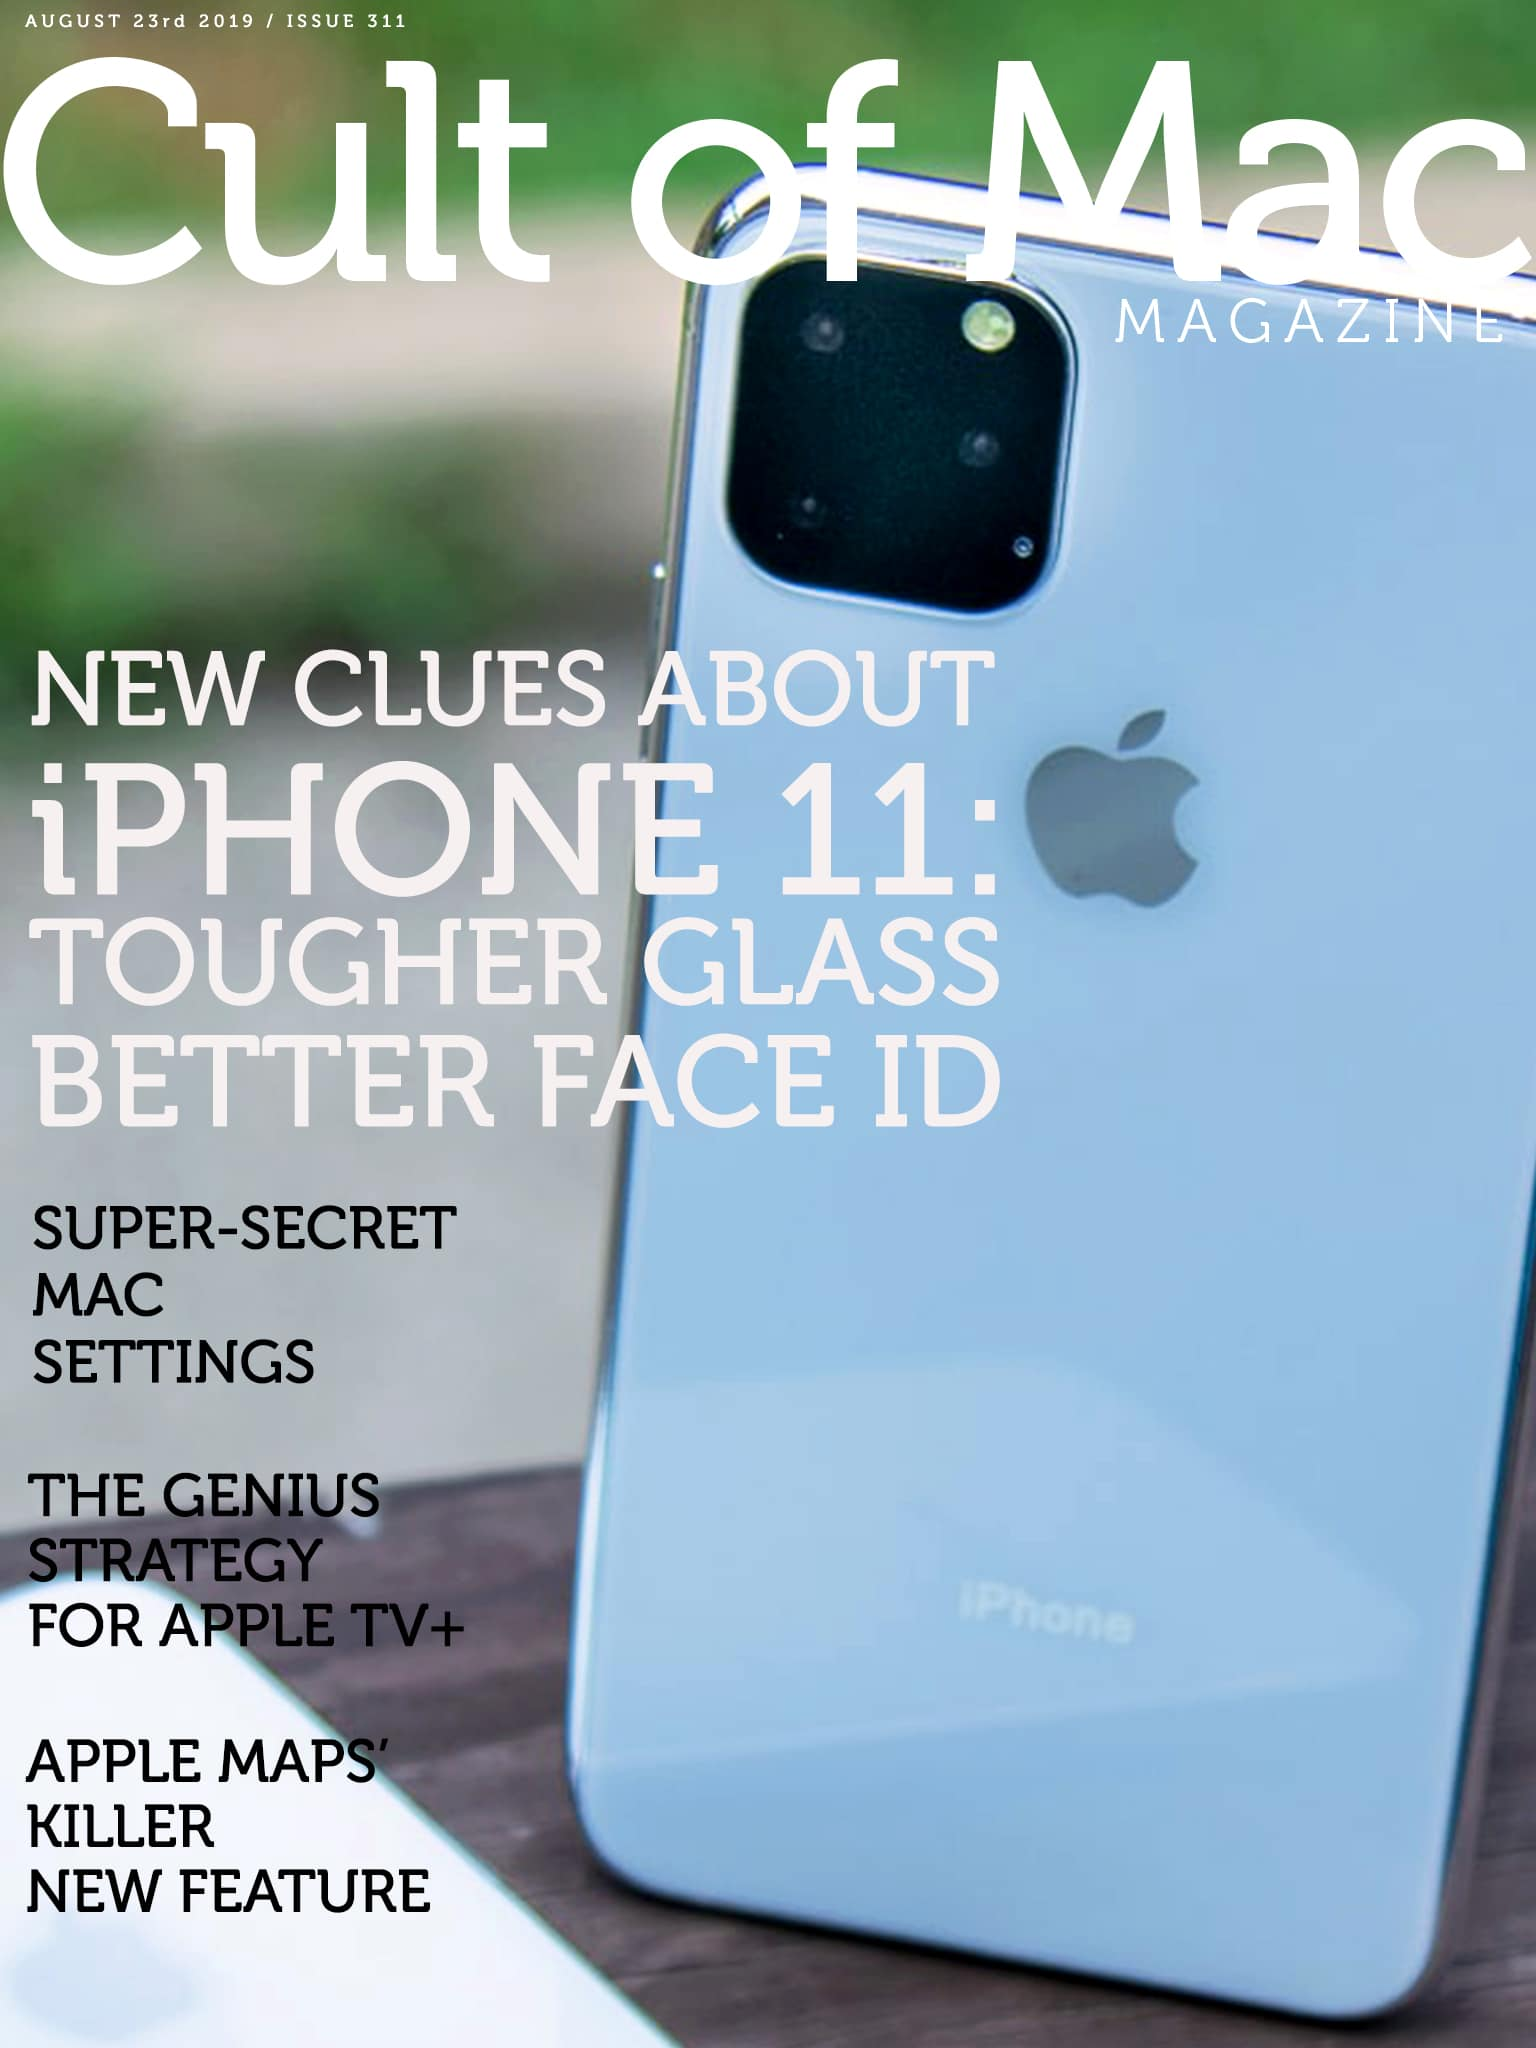 Get the week's best Apple product leaks and rumors in this week's issue of Cult of Mac Magazine.